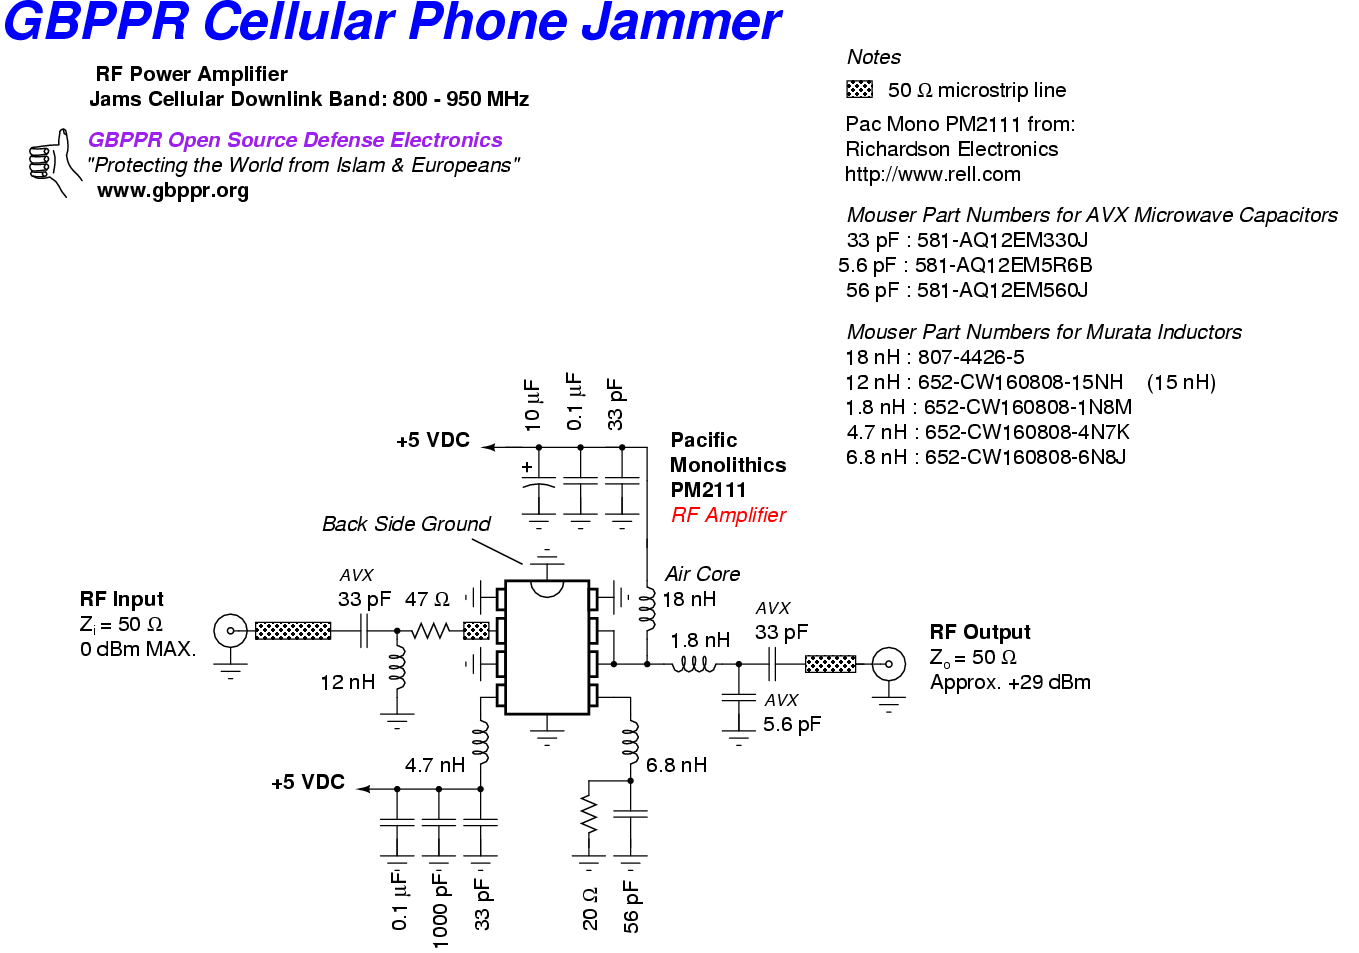 Gbppr Cellular Phone Jammers Fm Circuit Page 2 Rf Circuits Nextgr Jammer Amplifier 1 Watt 800 950 Mhz 111k